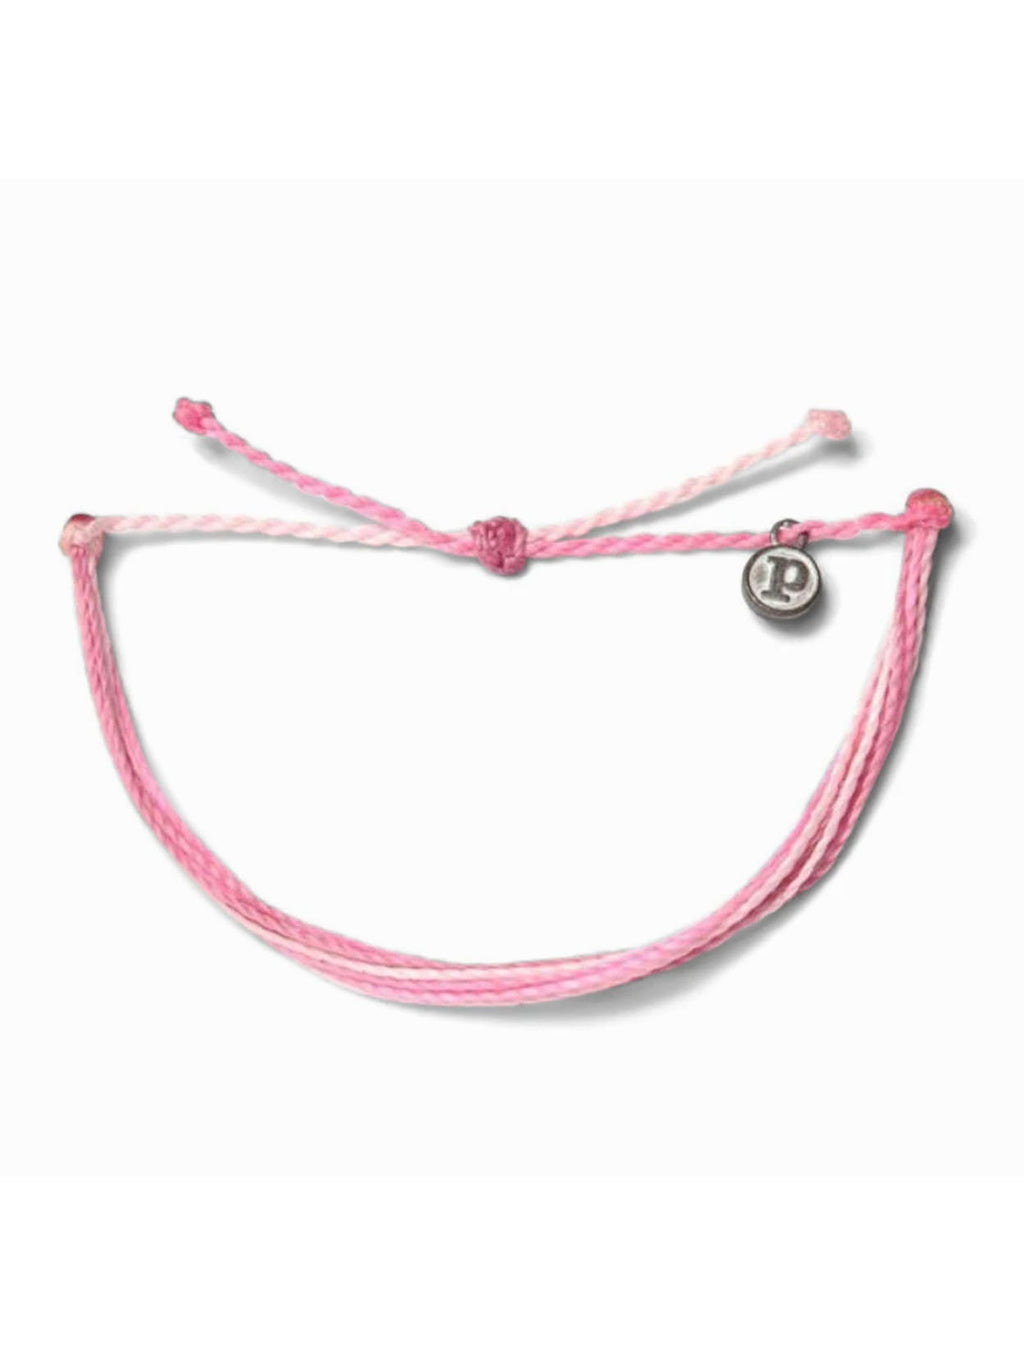 Pure Vida Original Bracelet in Boarding For Breast Cancer